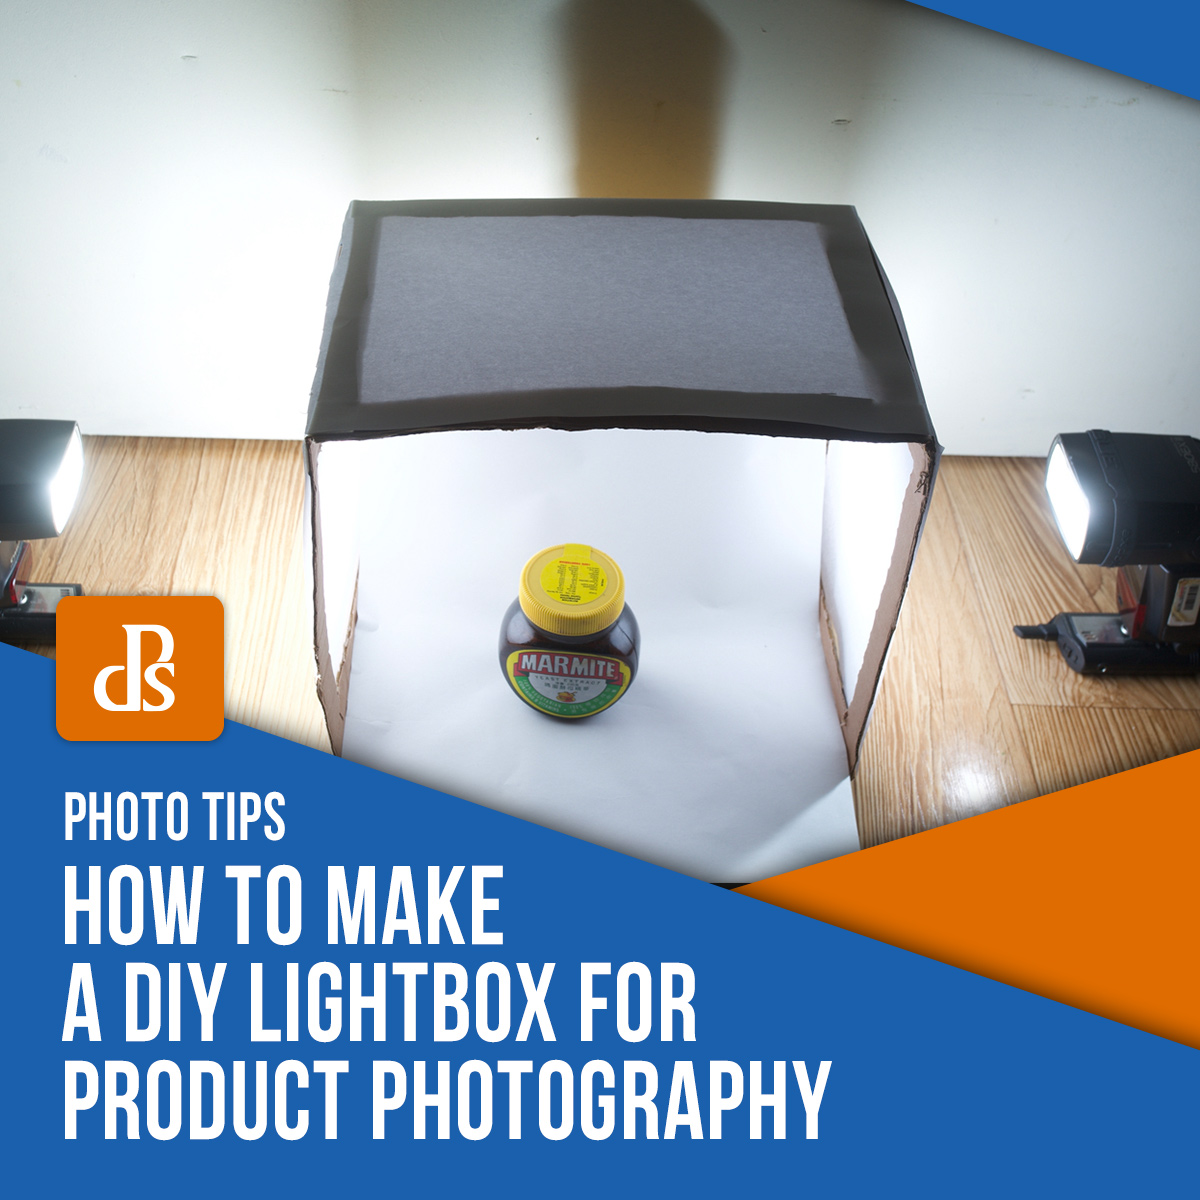 https://i0.wp.com/digital-photography-school.com/wp-content/uploads/2020/06/dps-diy-lightbox-for-product-photography.jpg?ssl=1